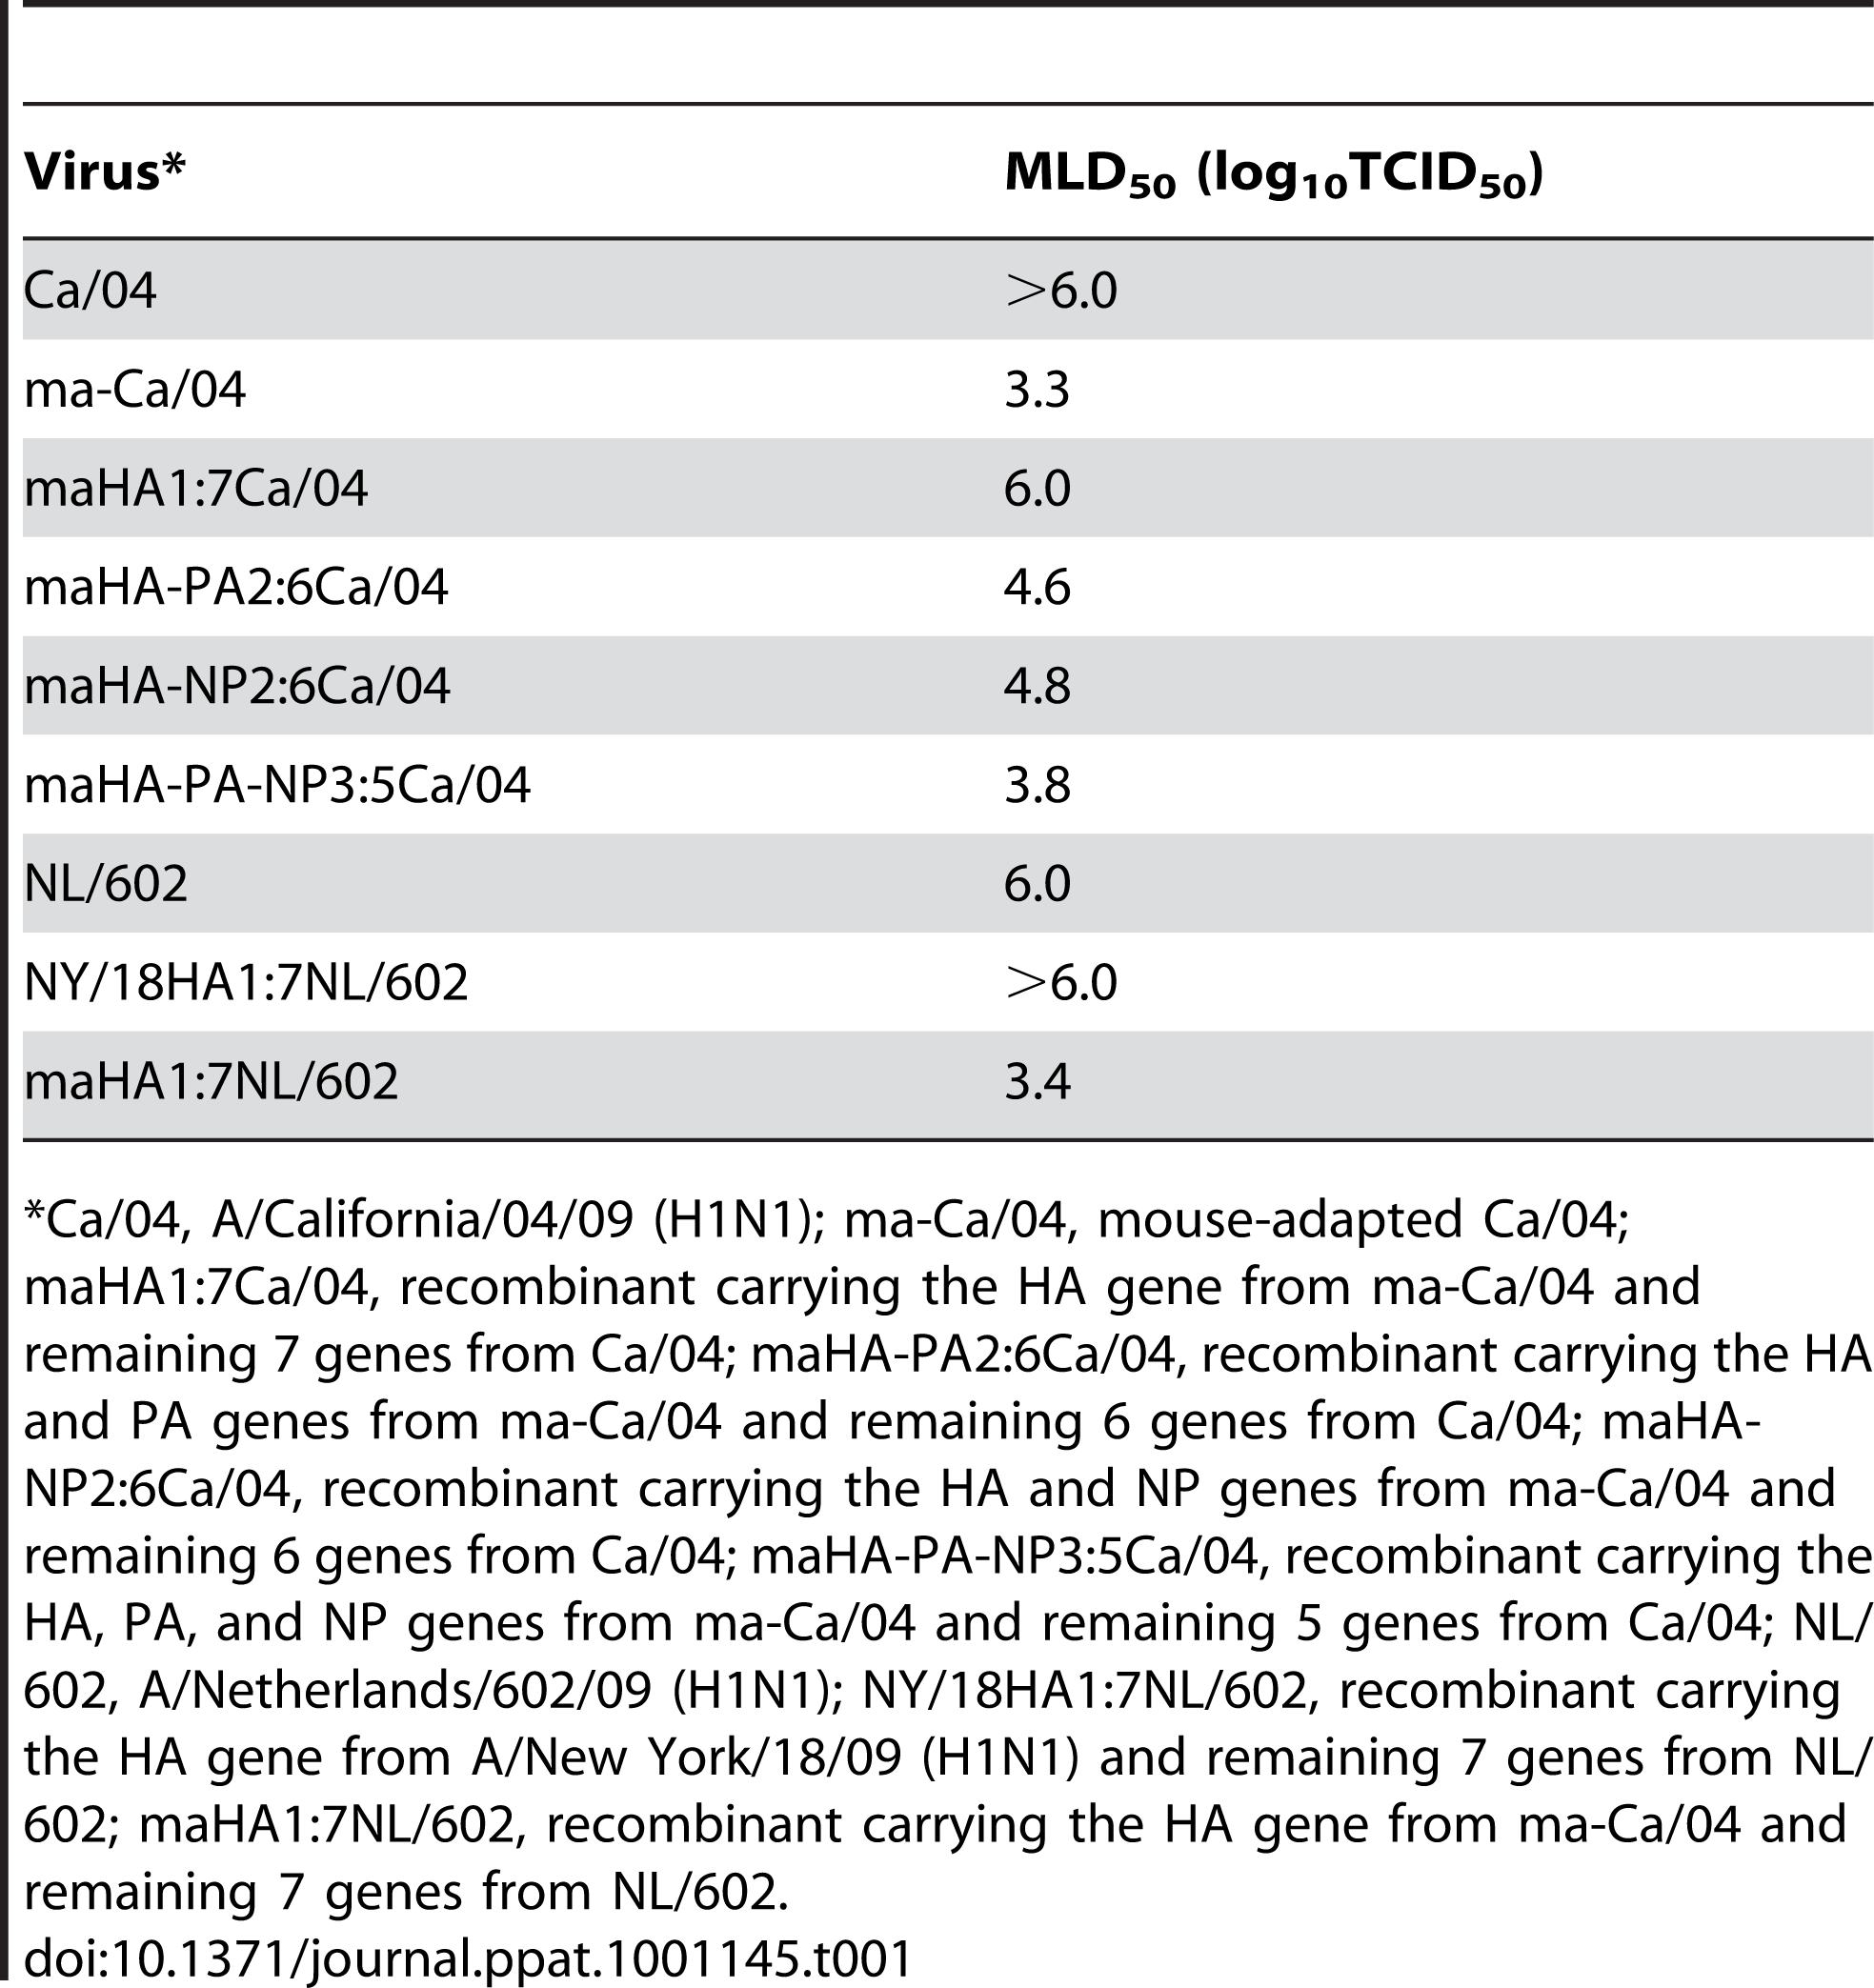 MLD<sub>50</sub> of wt and recombinant H1N1pdm viruses in Balb/c mice.